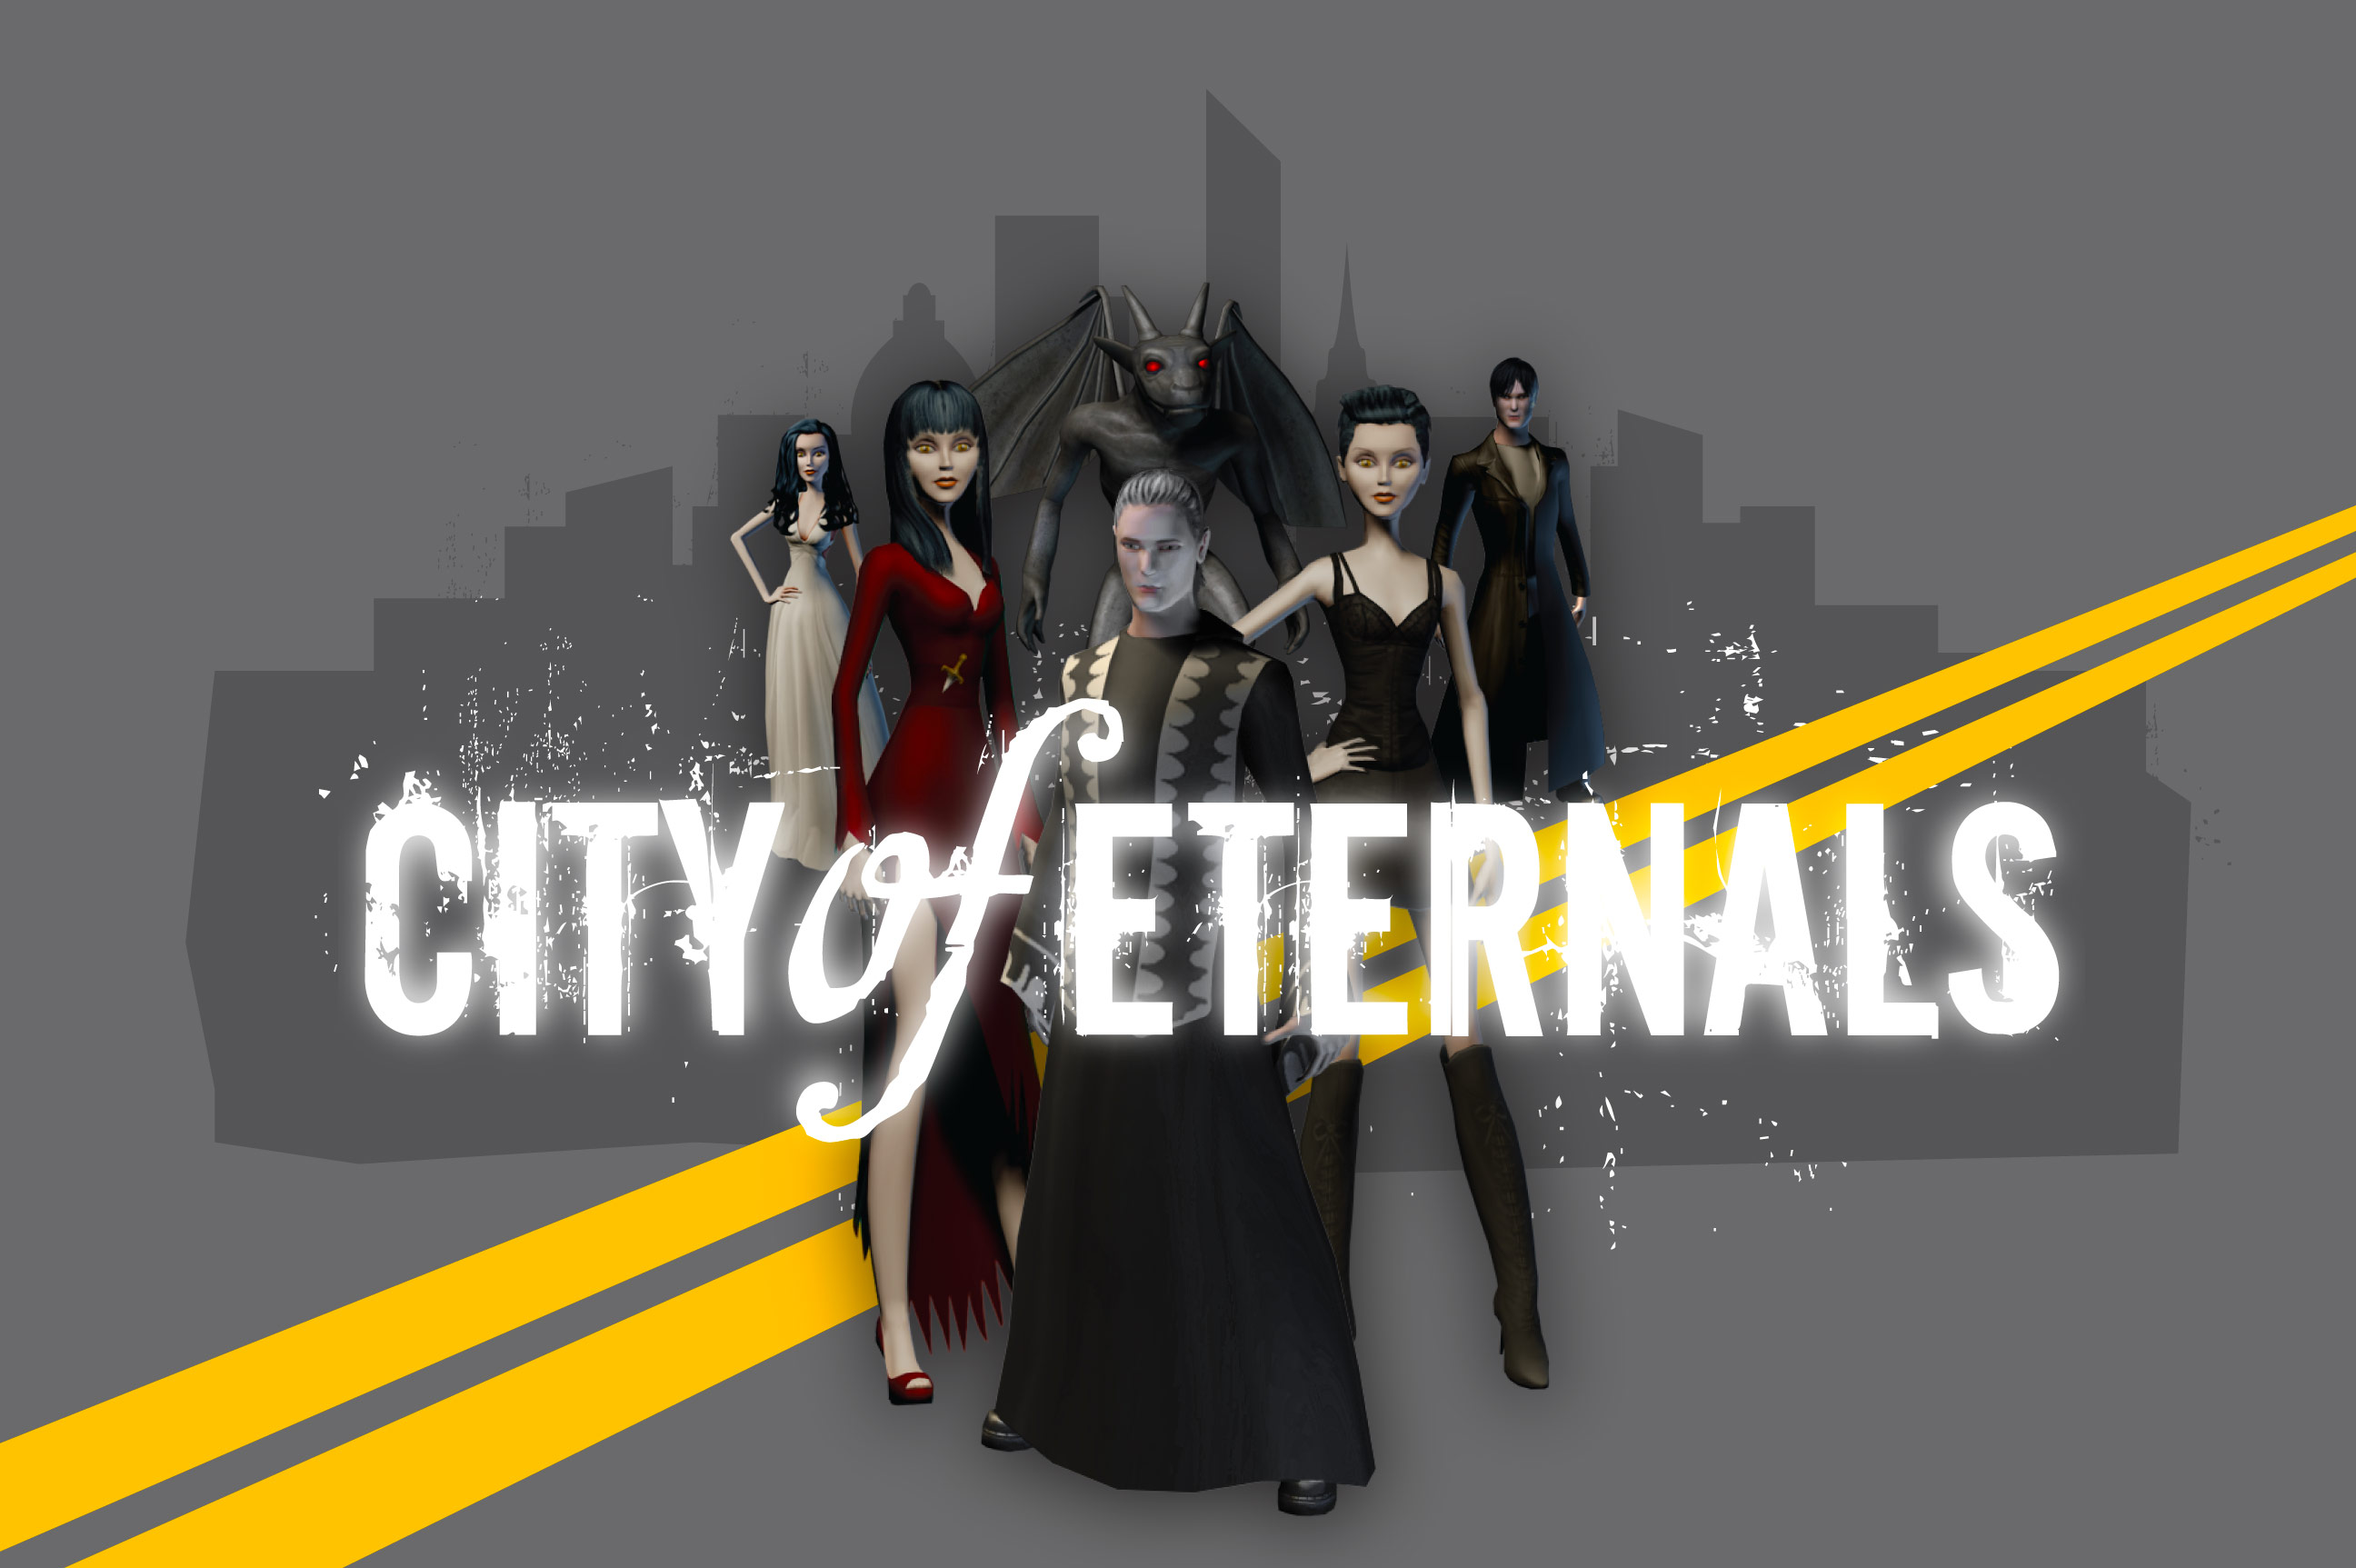 city of eternals on facebook